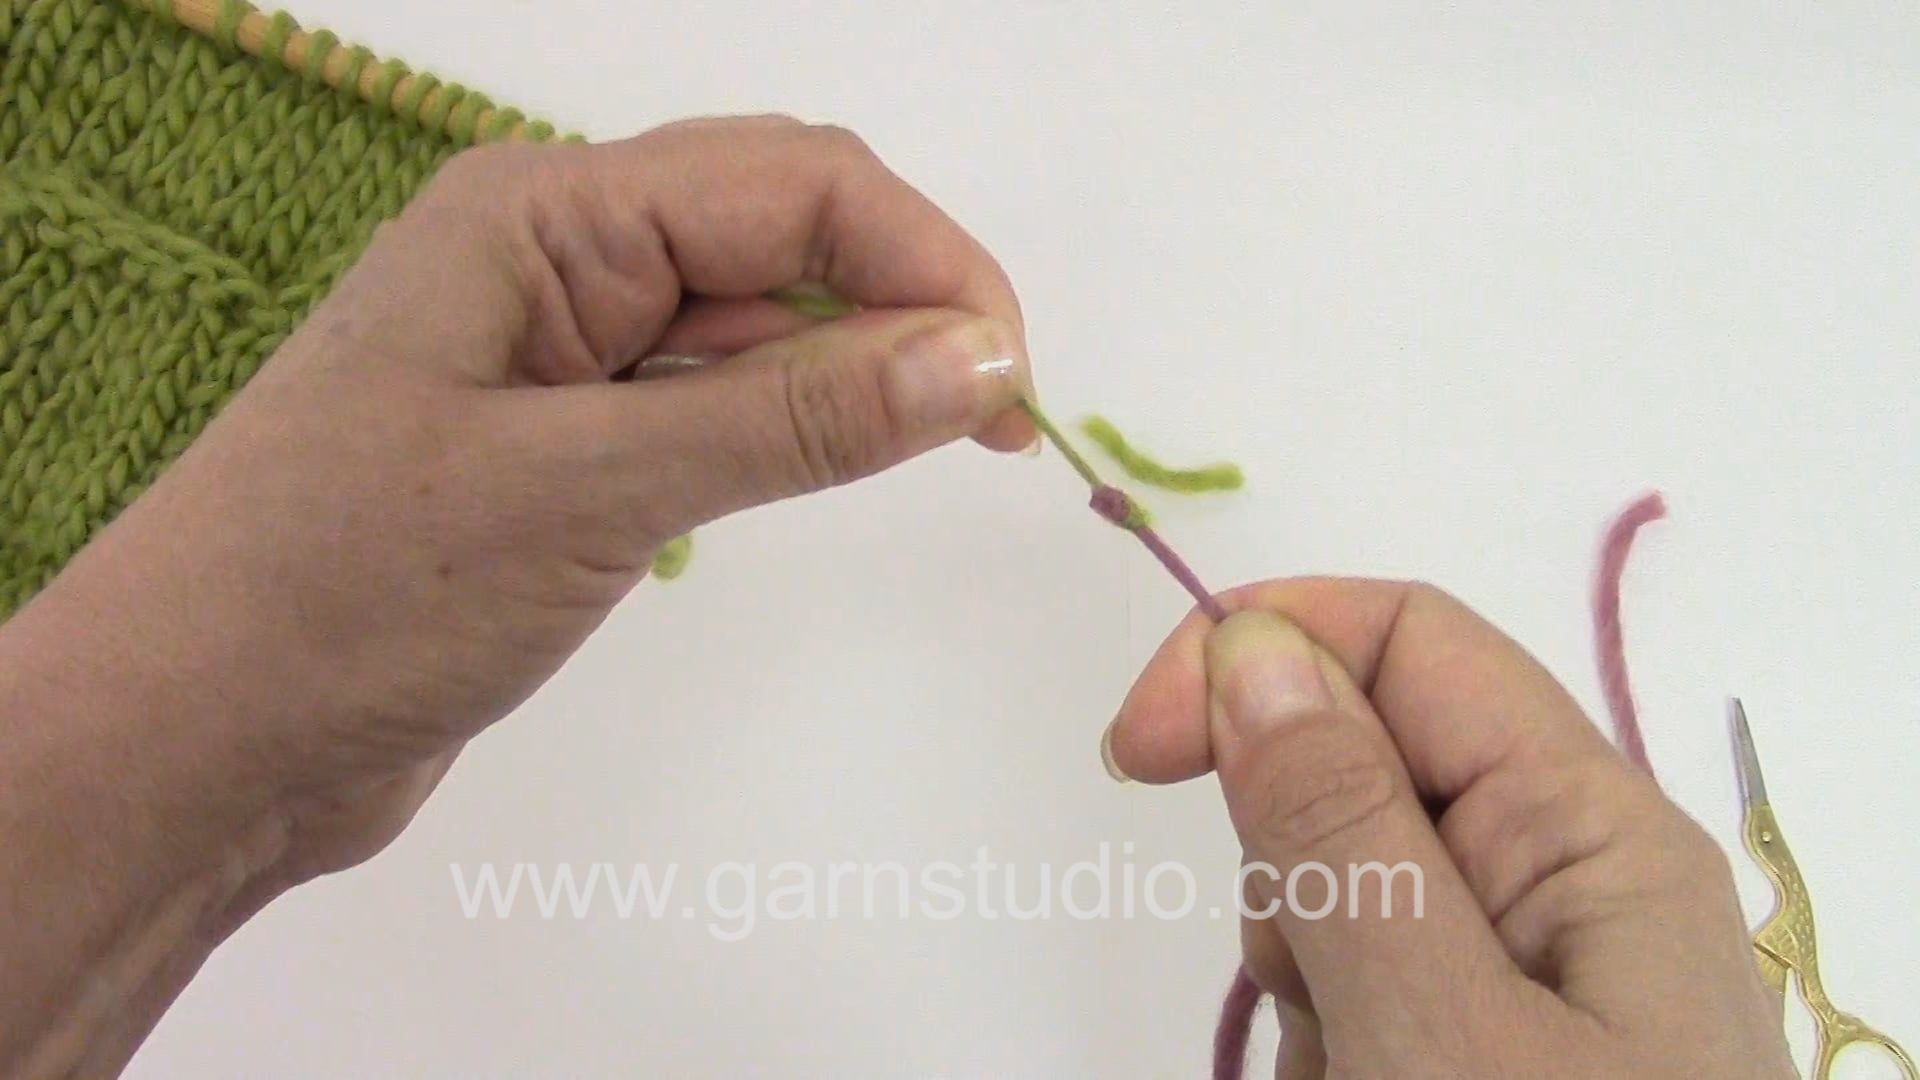 Knitting Joining Yarn Double Knot : Drops crafting tutorial how to join new yarn with a